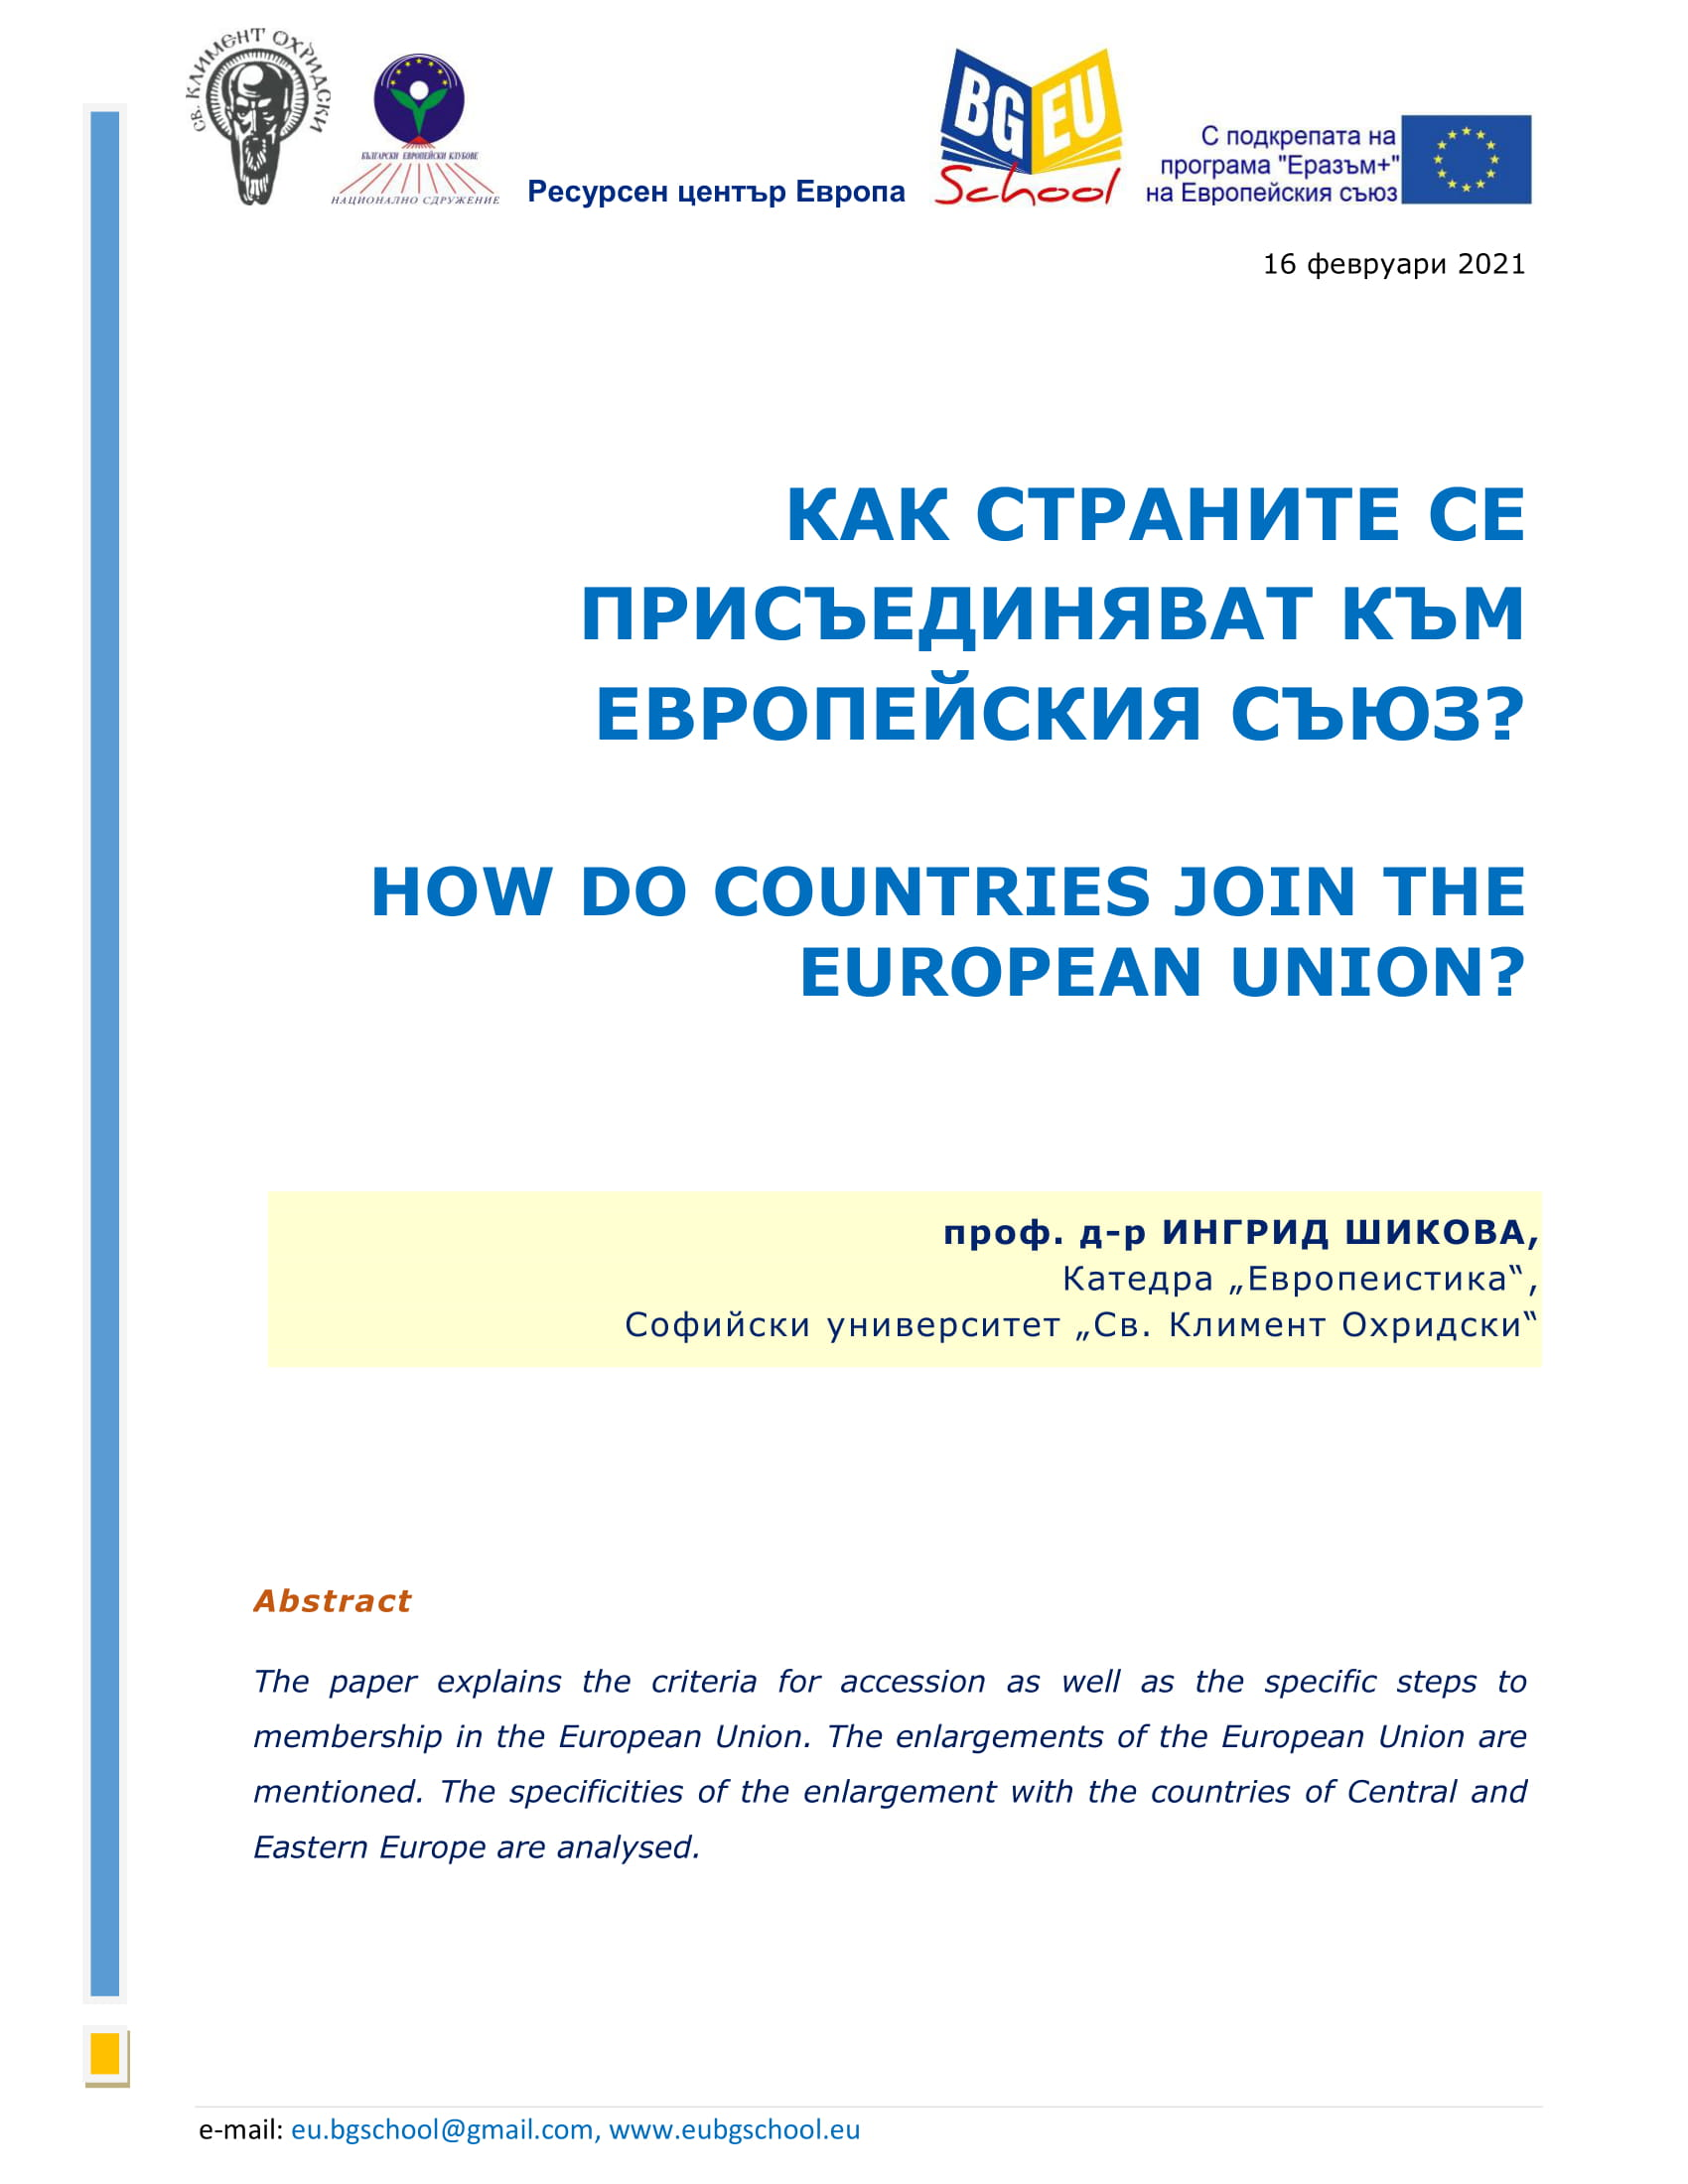 HOW DO COUNTRIES JOIN THE EUROPEAN UNION?